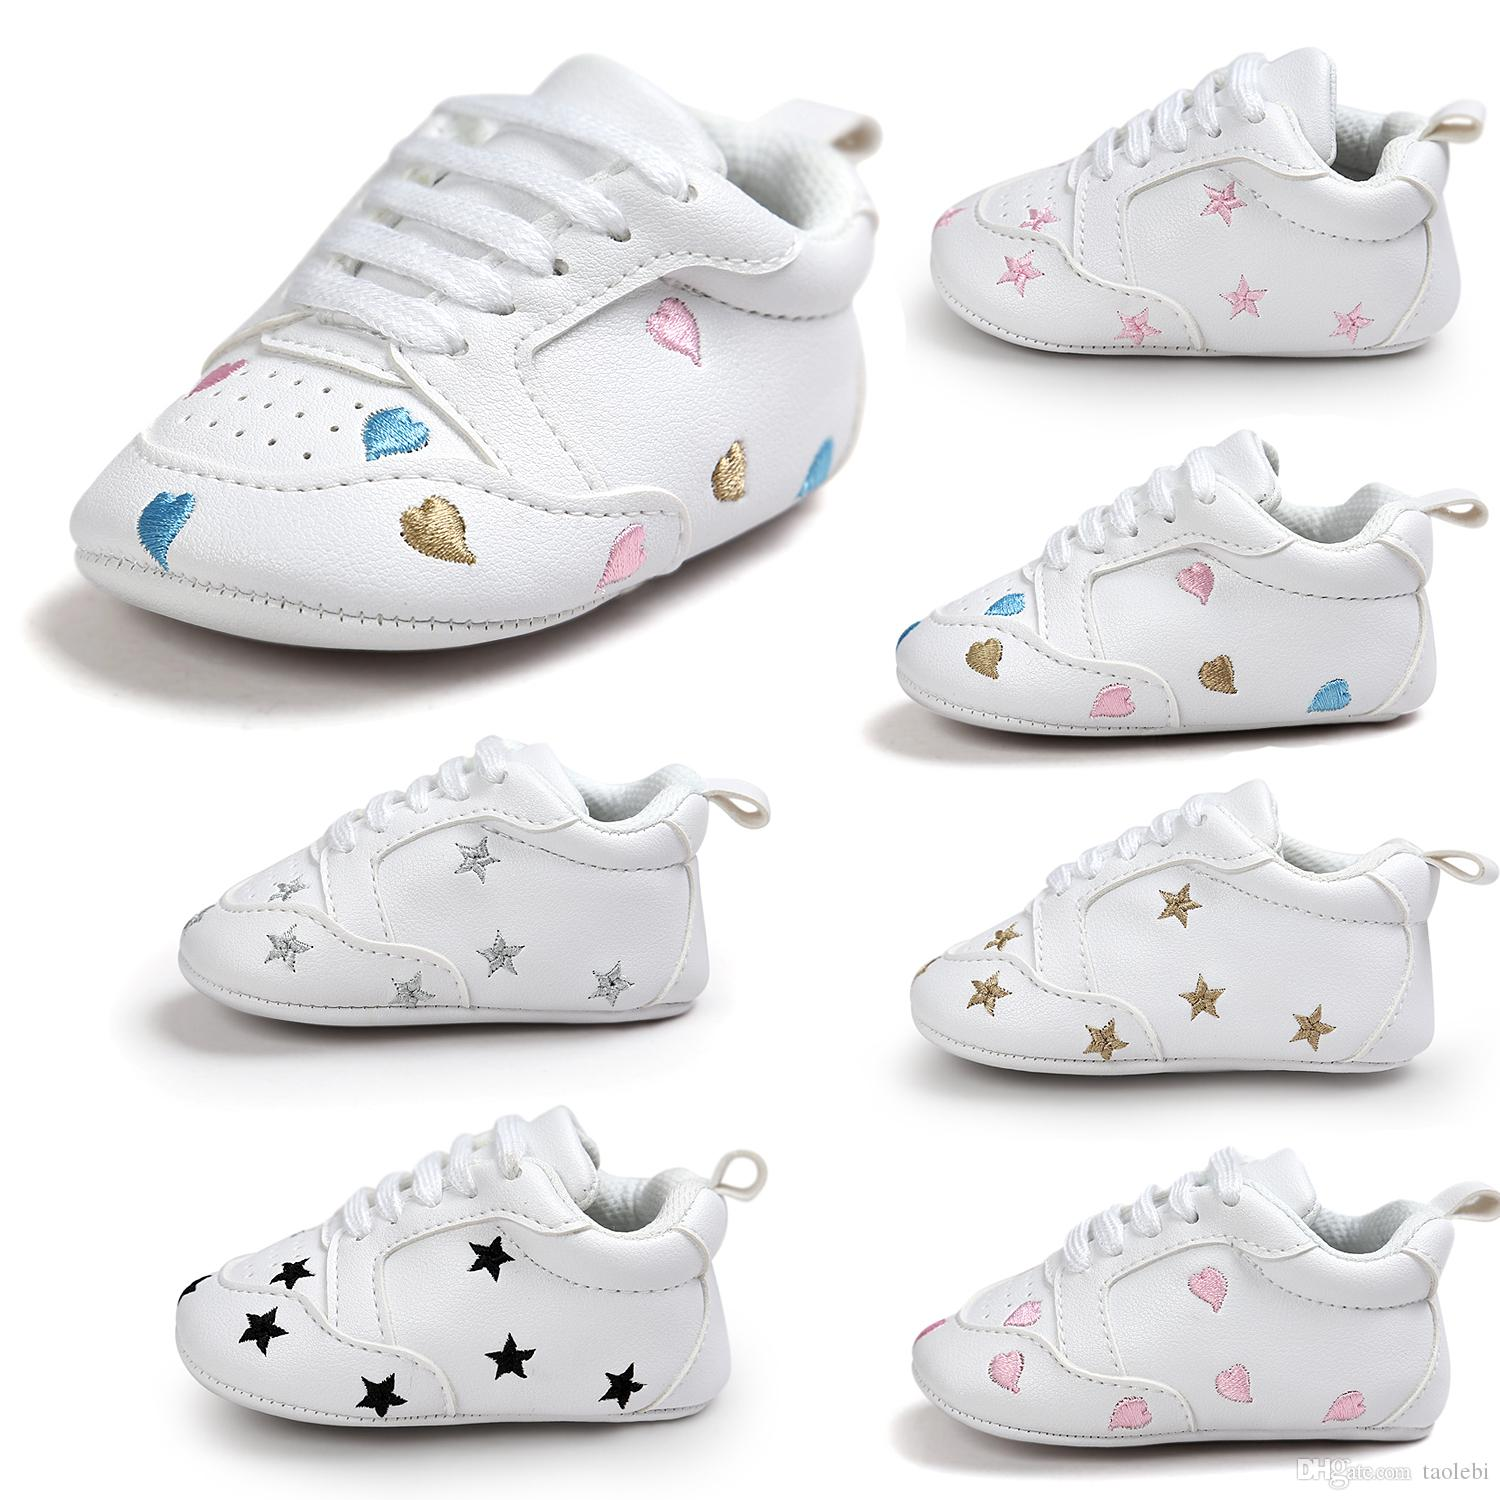 2018 2017 Pu Leather Baby Sneakers Fashion Design Baby Sport Shoes